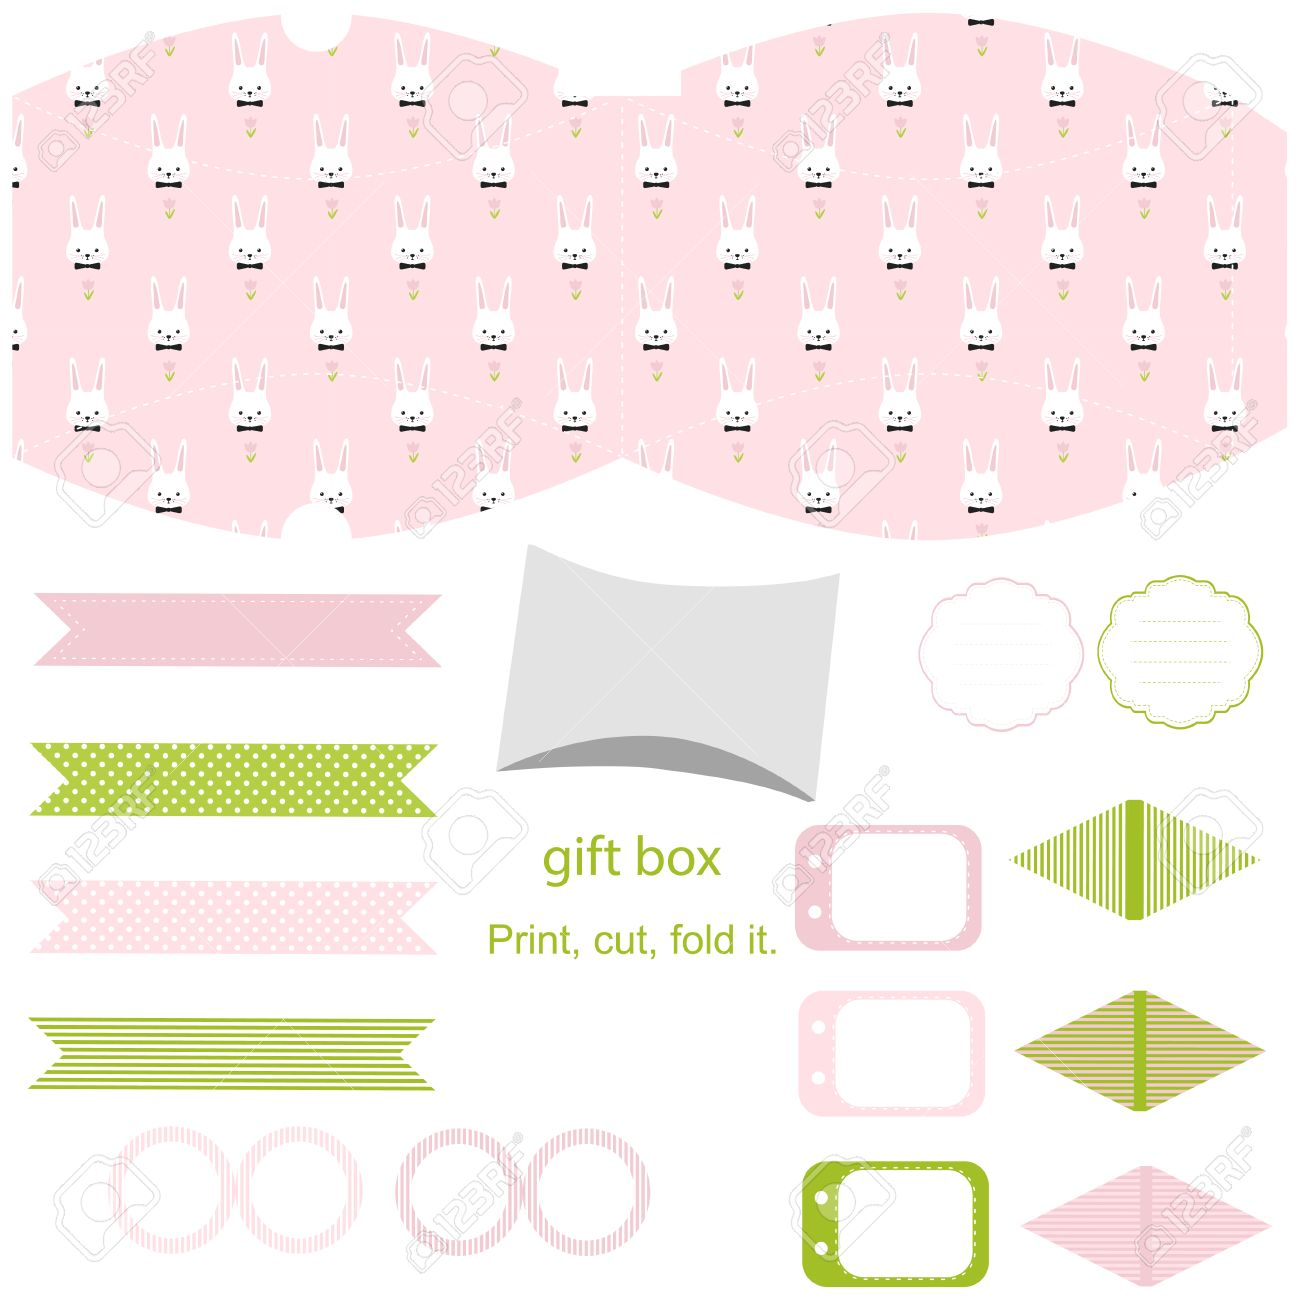 Party set gift box template empty labels and cupcake toppers easter bunny pattern party set gift box template empty labels and cupcake toppers and food tags negle Choice Image